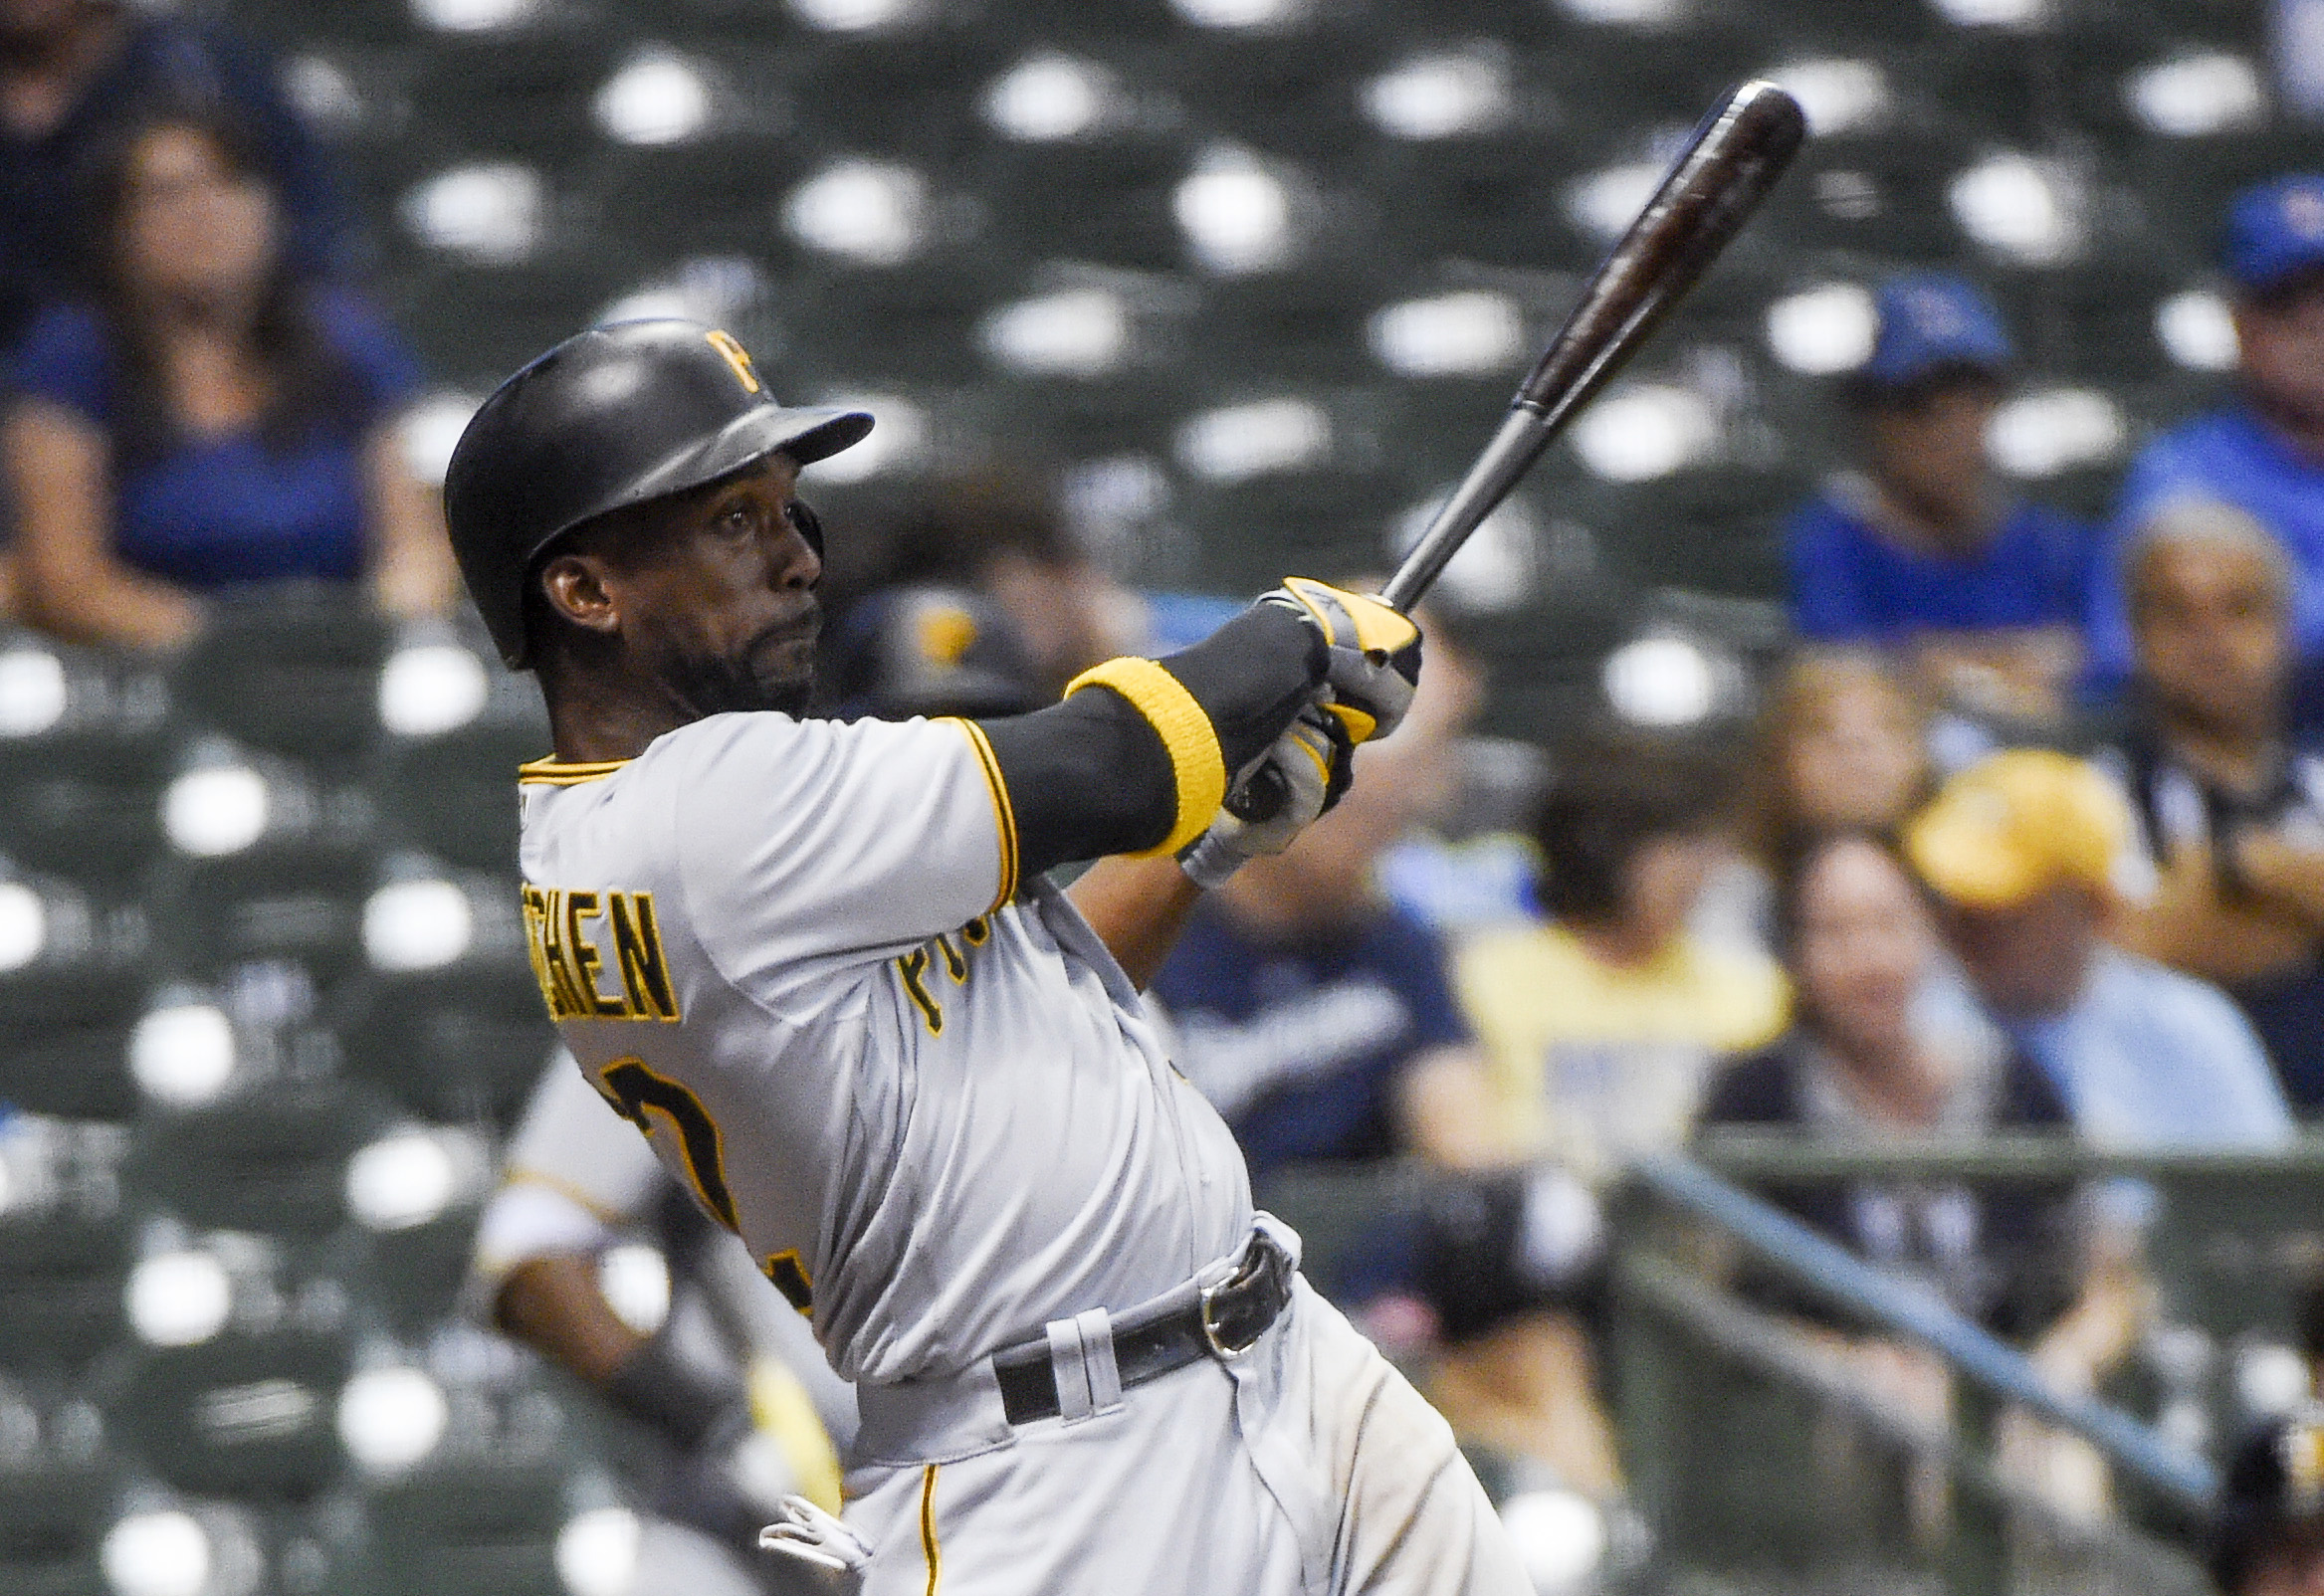 Pittsburgh Pirates' Andrew McCutchen drives in John Jaso with a base hit during the 10th inning of a baseball game against the Milwaukee Brewers on Thursday, Aug. 25, 2016, in Milwaukee. (AP Photo/Benny Sieu)